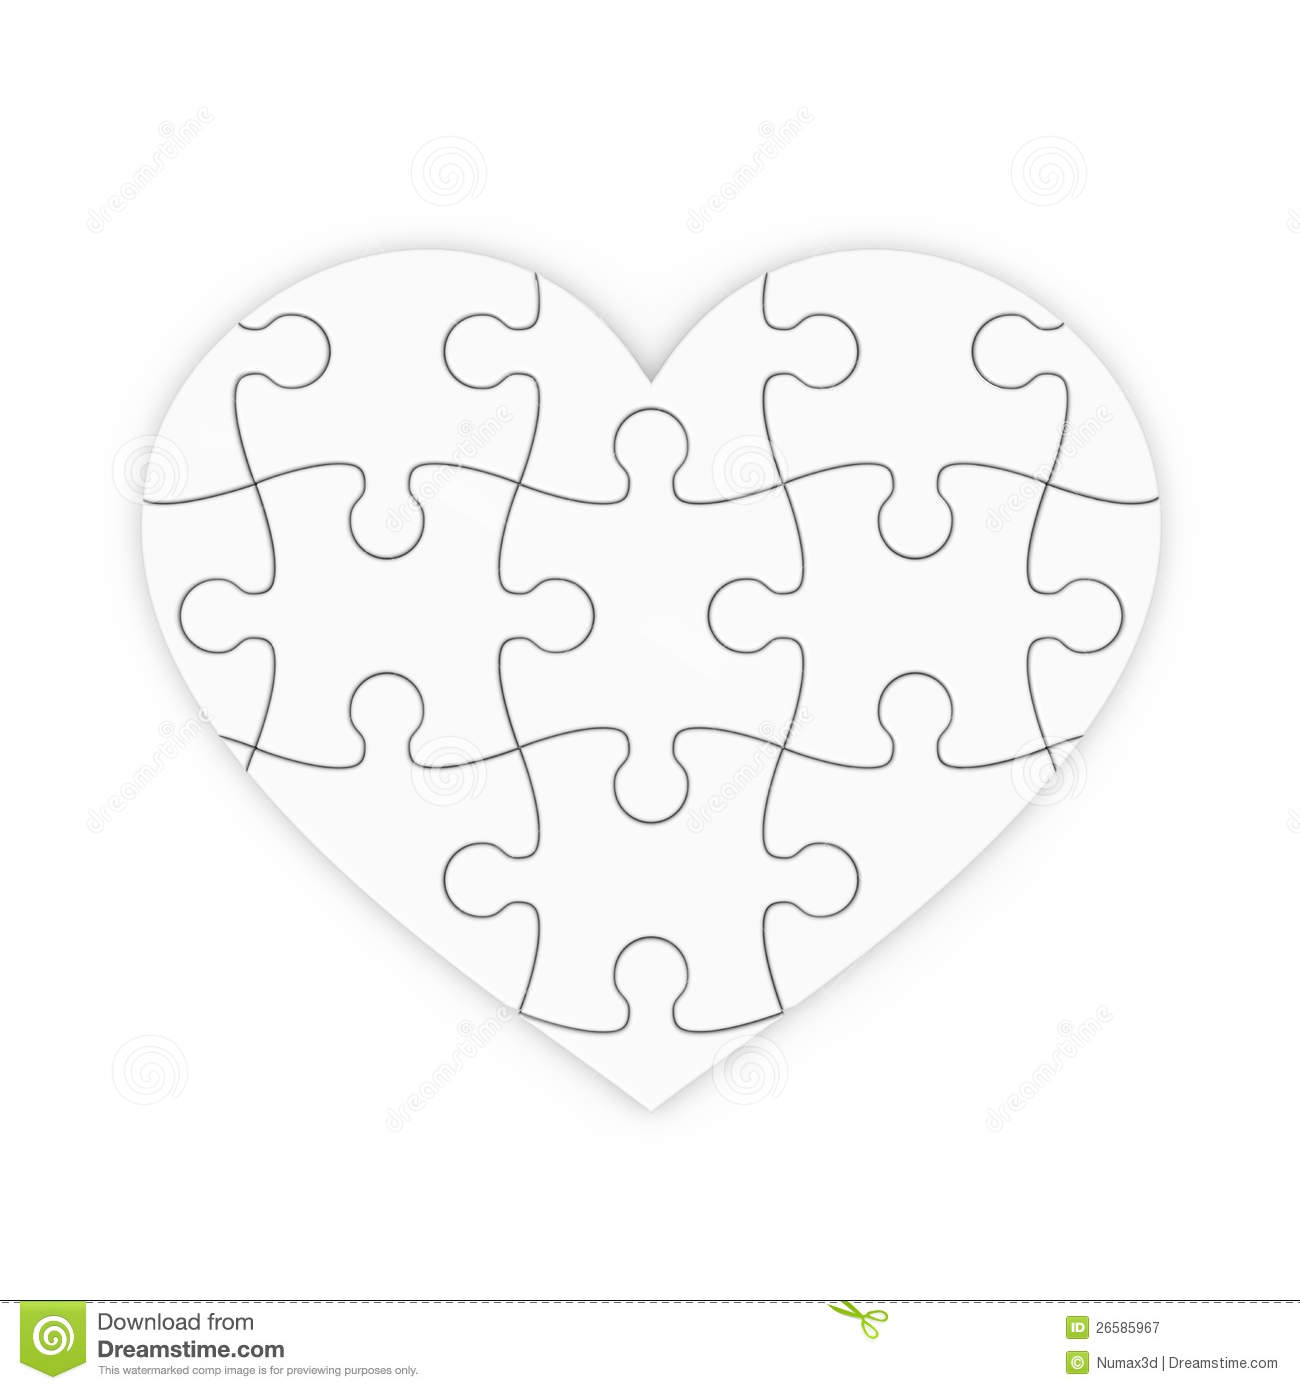 6 puzzle pieces template